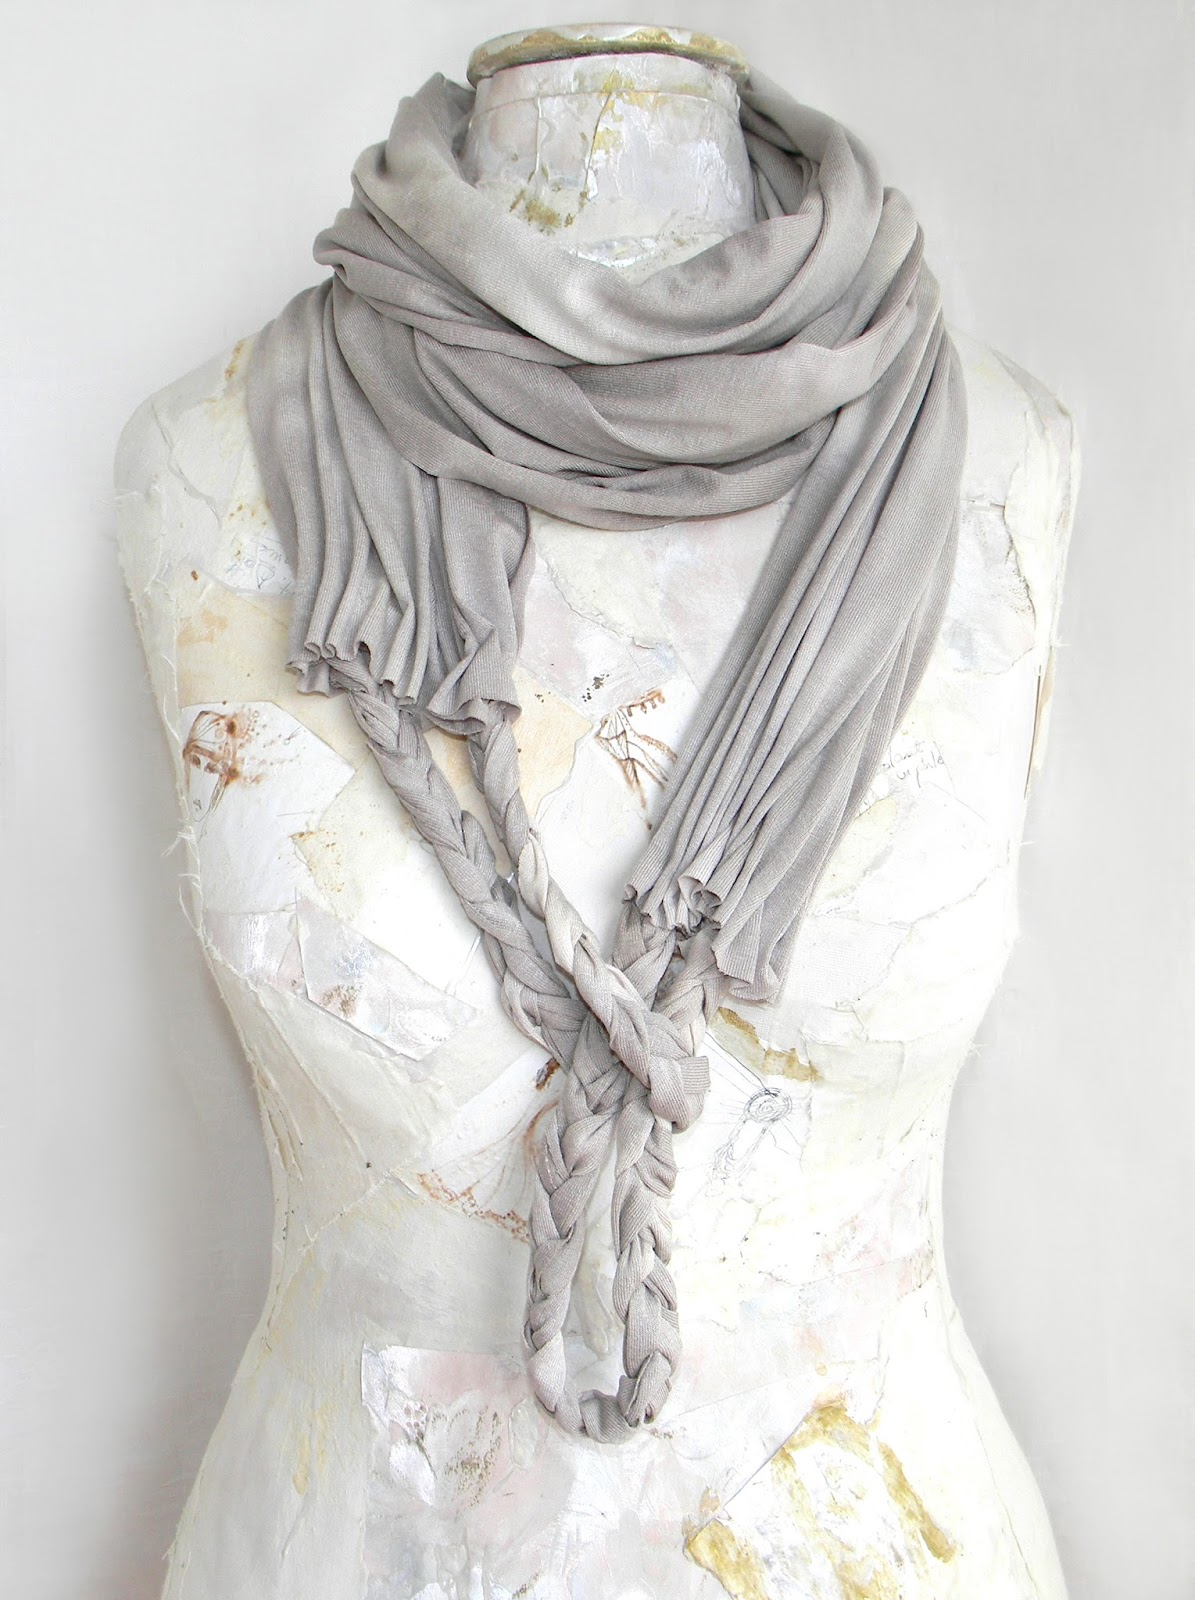 Handmade Jersey Loop Scarf Braided Knit Shawl Fashion Scarflette in Light Grey